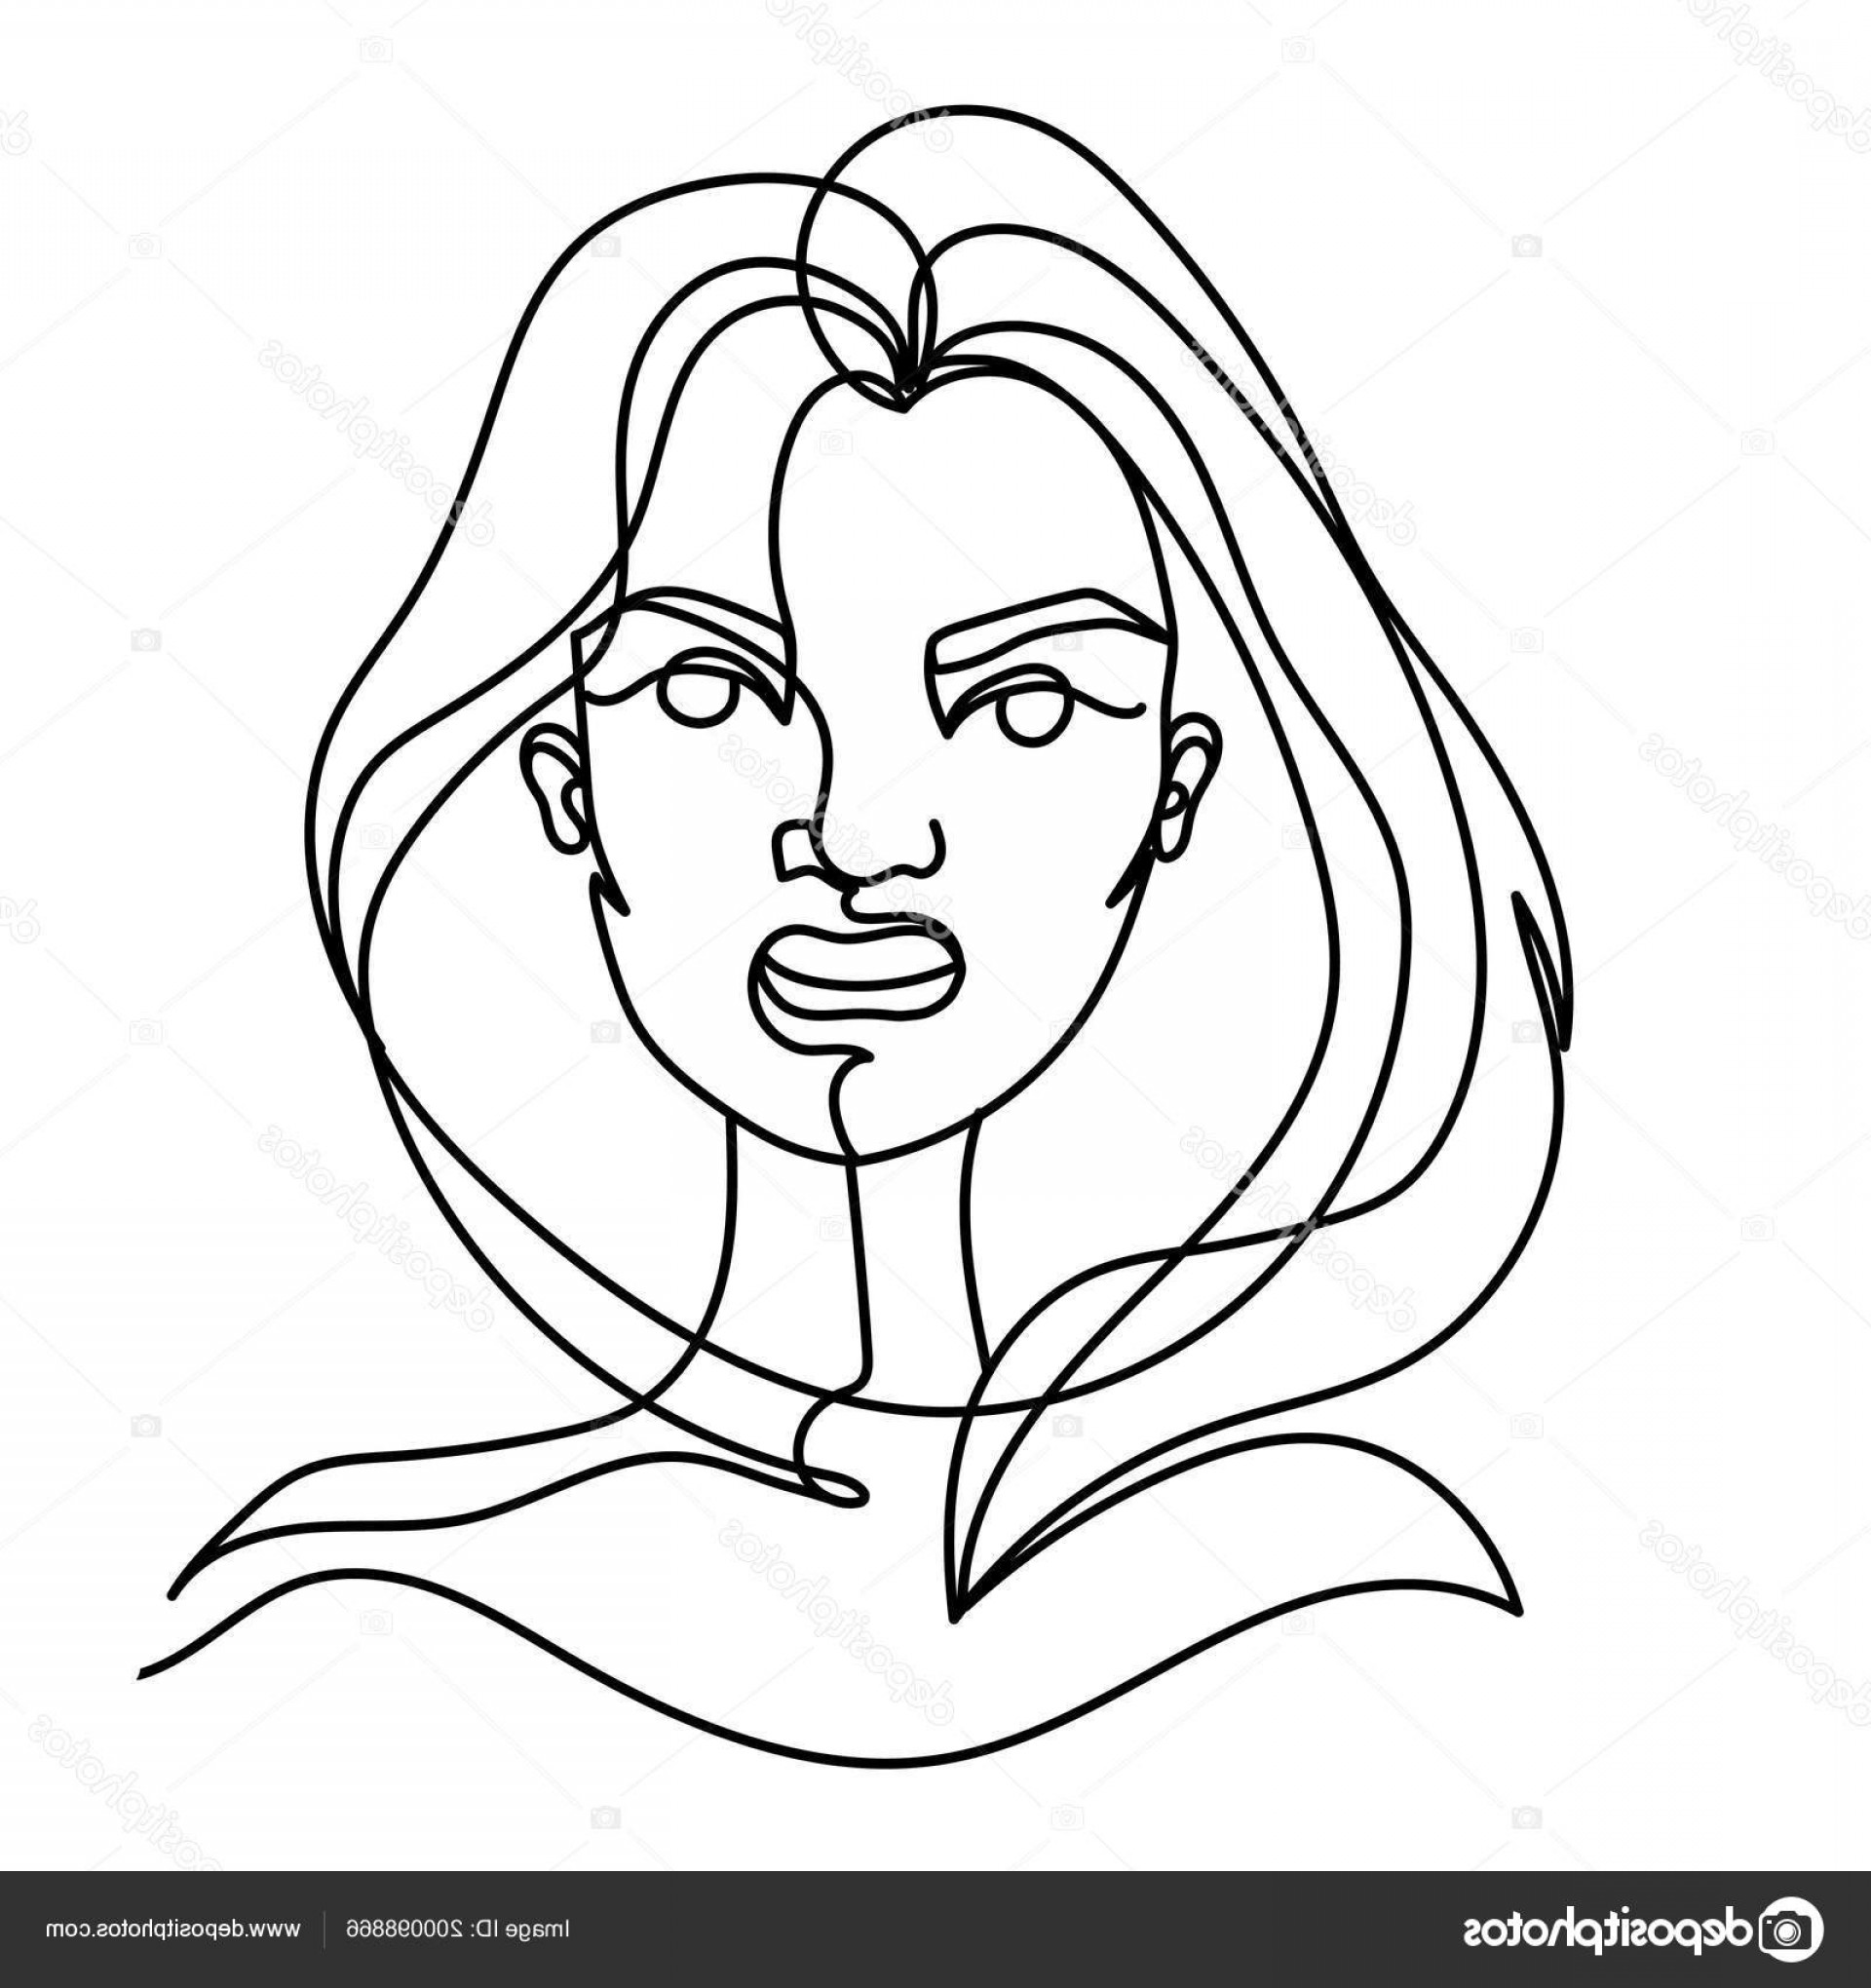 Woman Silhouette Vector Face Expression: Stock Illustration Screaming Woman One Line Art